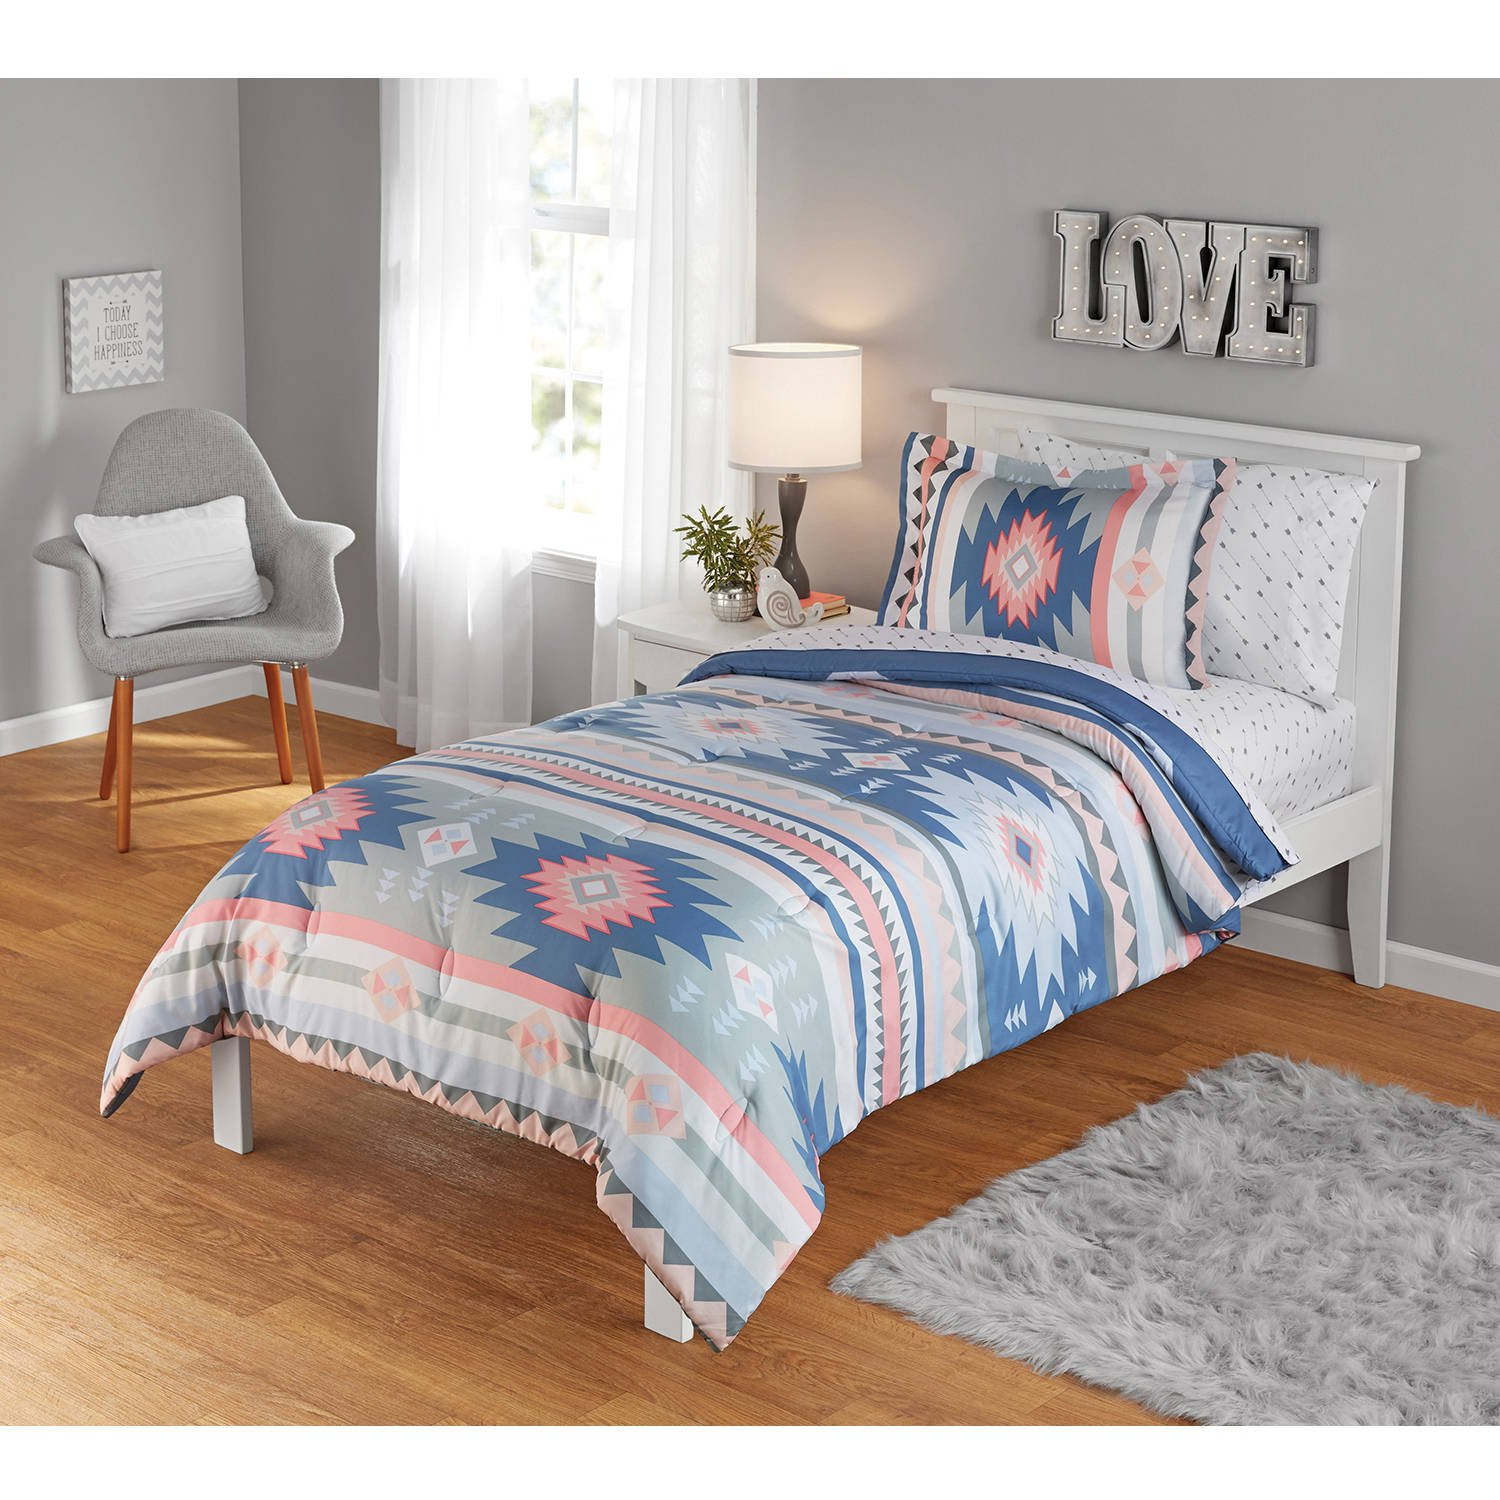 N2 2 Piece Ivory Blue Coral Pink Aztec Comforter Twin/Twin XL Set, Bohemian Bedding Indie Southwest Tribal Native American Pattern Motifs Grey Stripes Indian Western Gray, Polyester